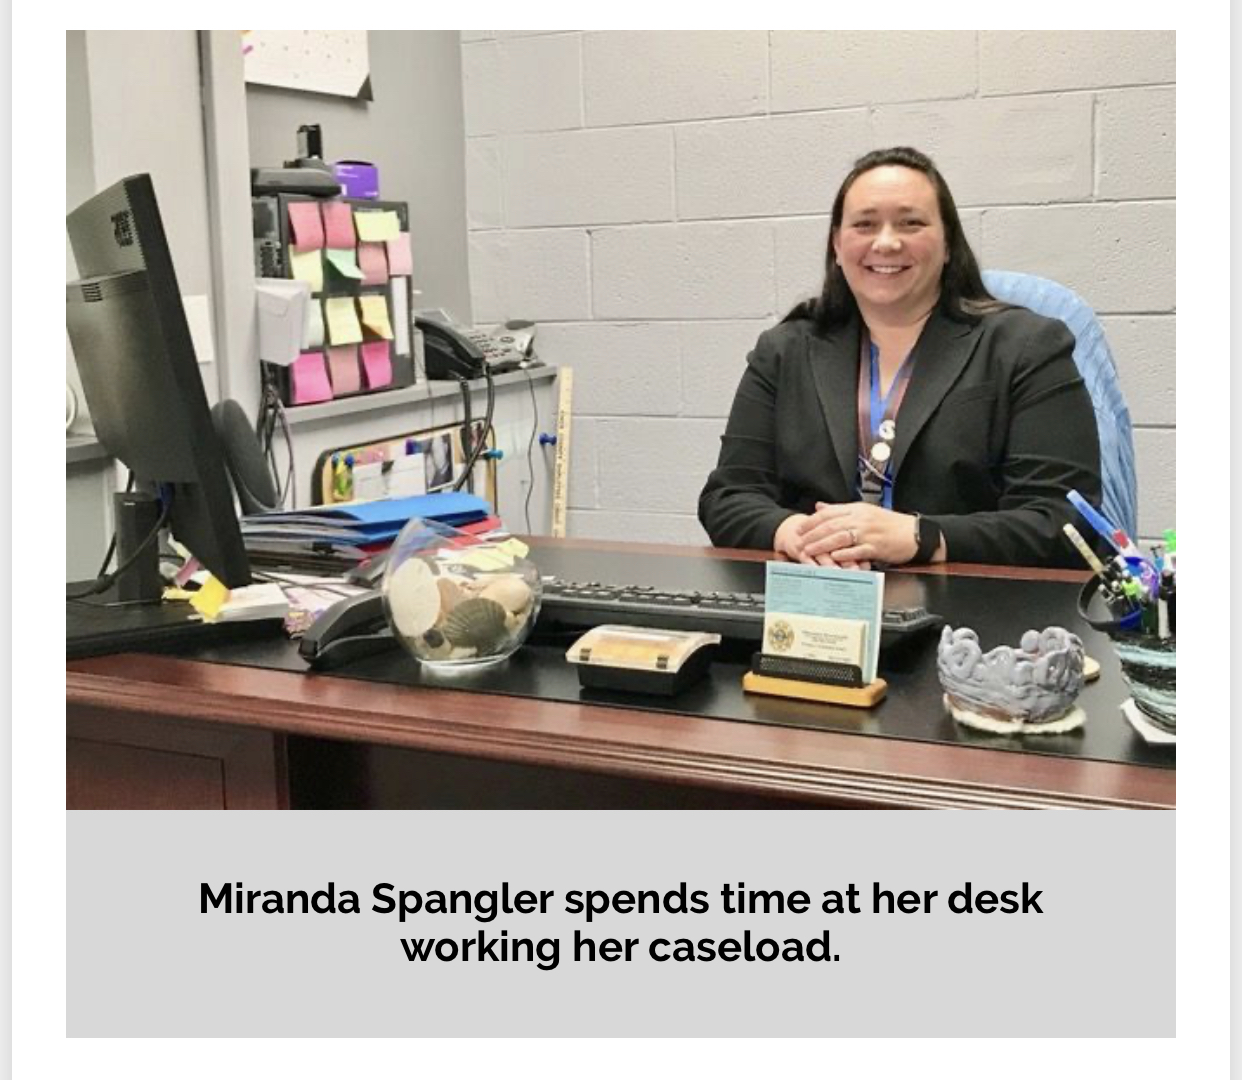 Detective Spangler smiling at desk